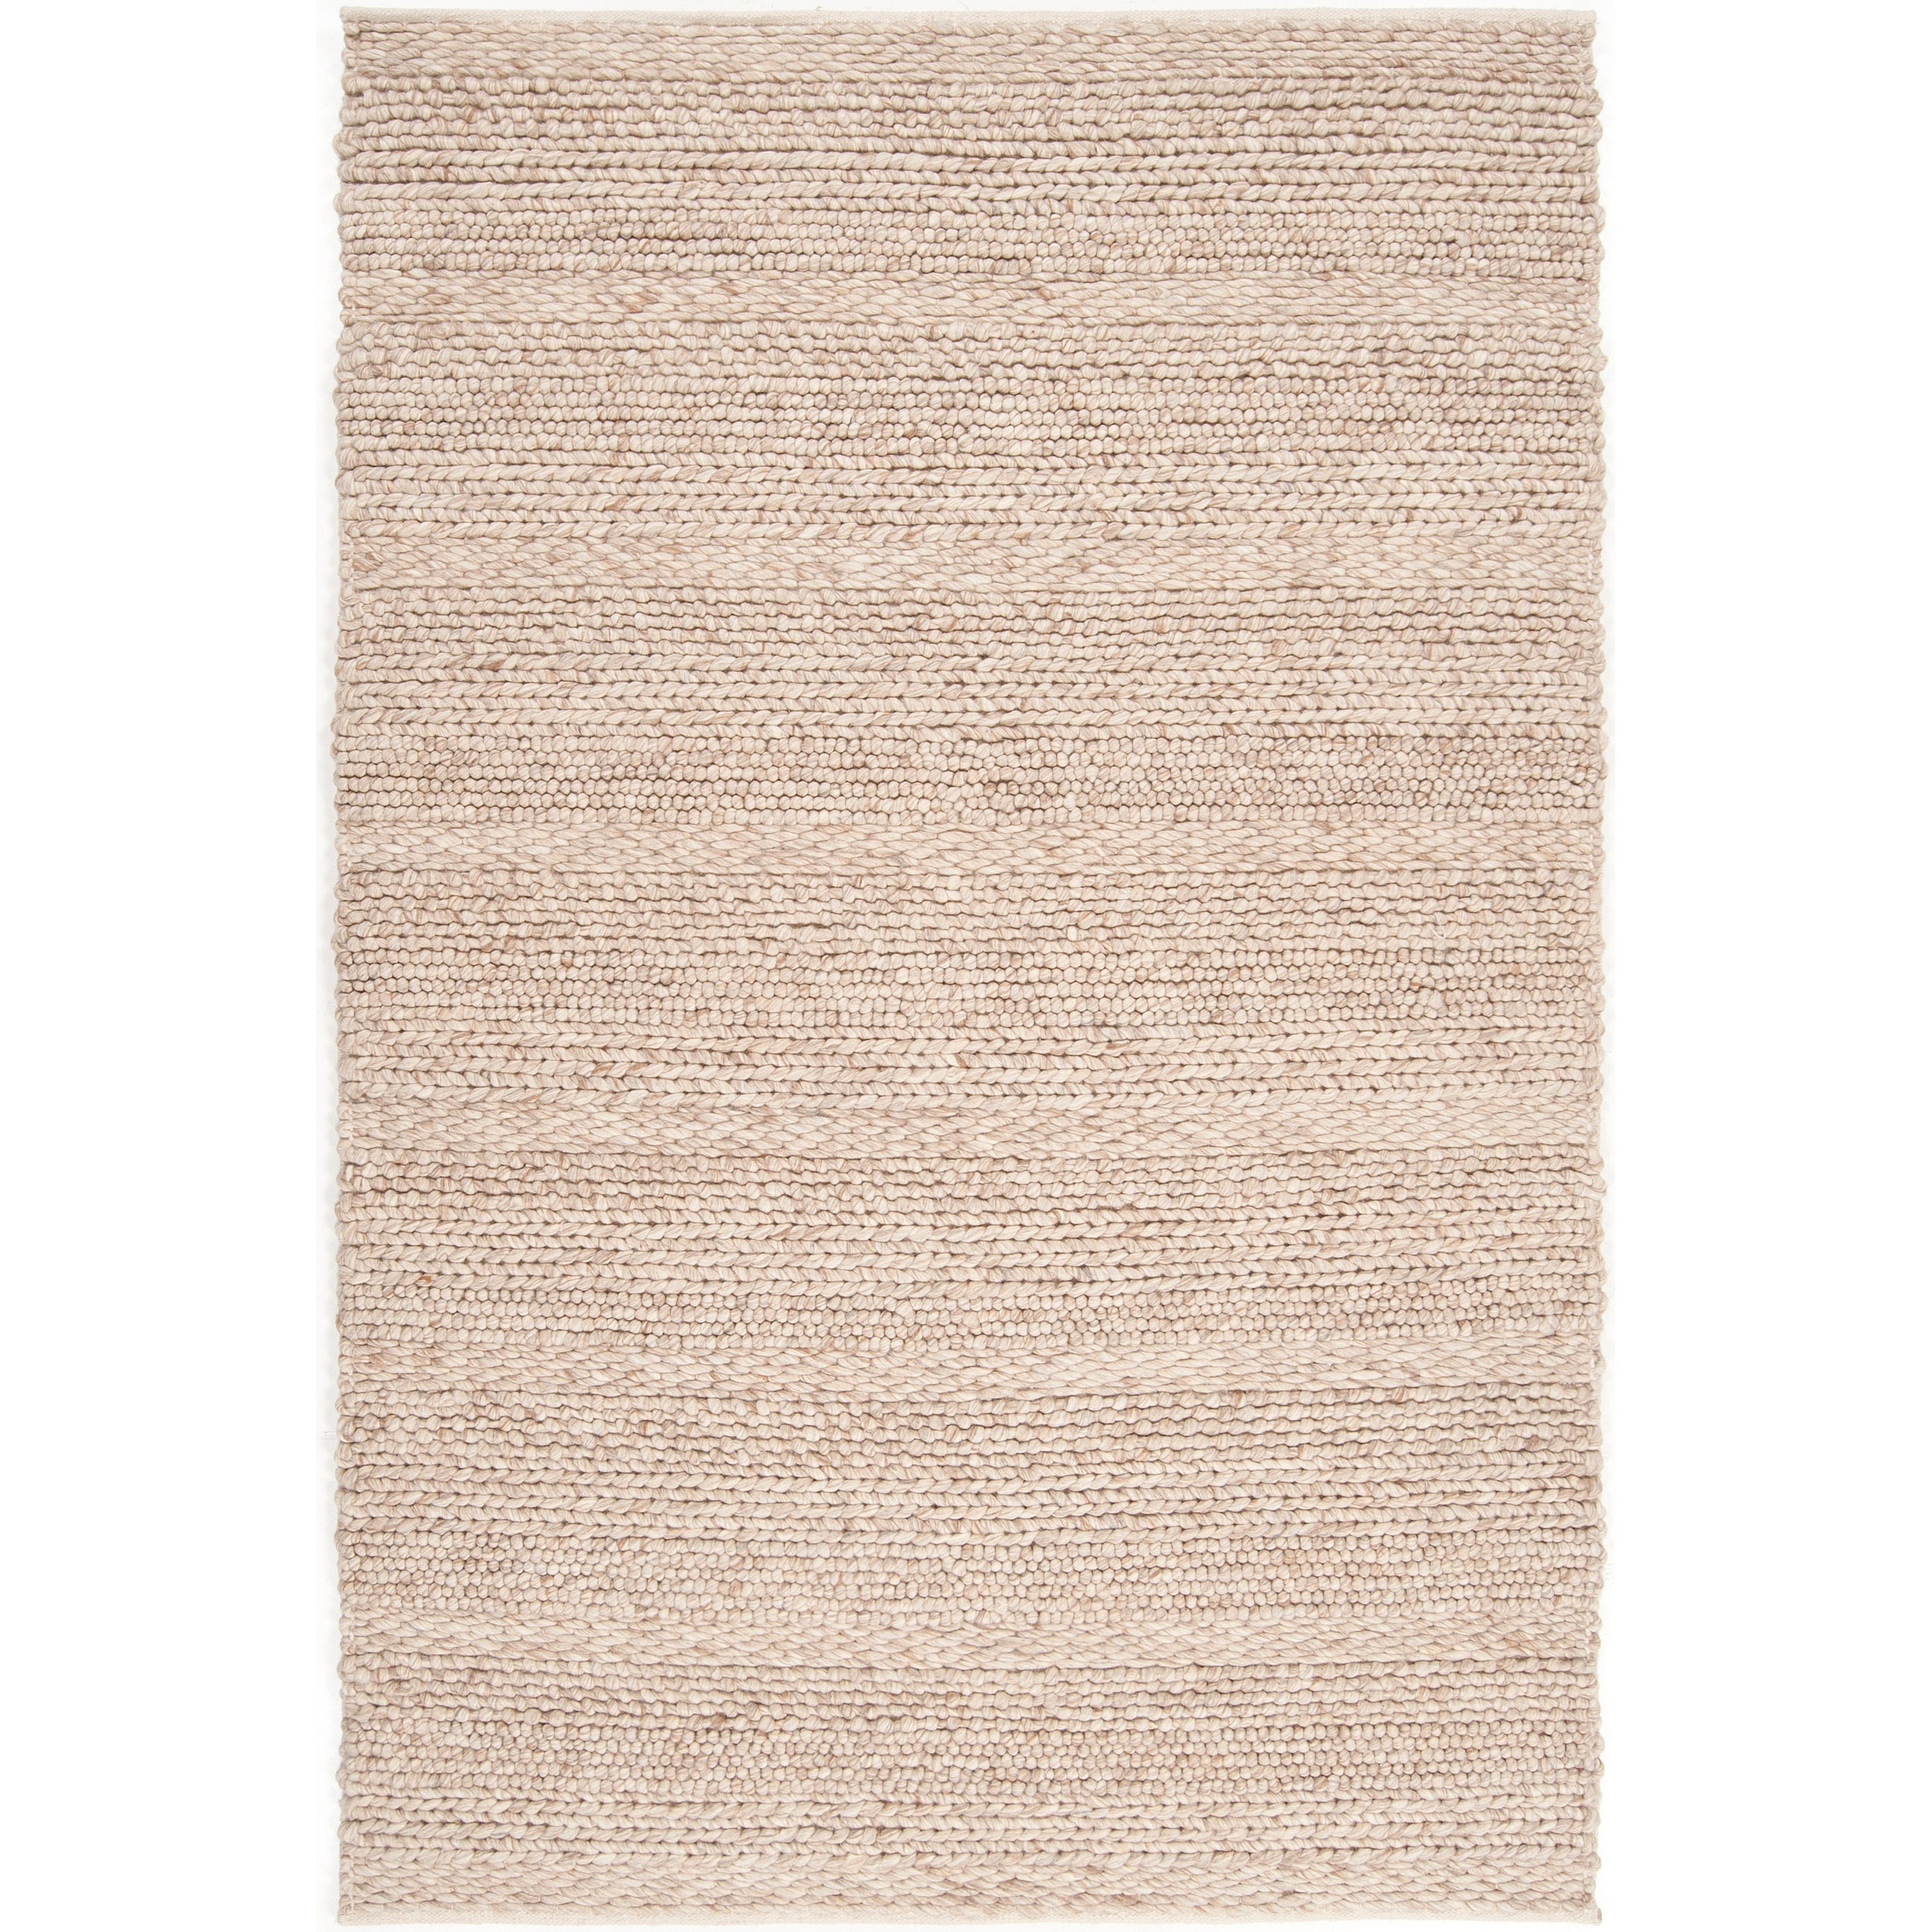 The Gray Barn Magda Hand-woven Casual Solid Beige Wool Area Rug - 5' x 8'